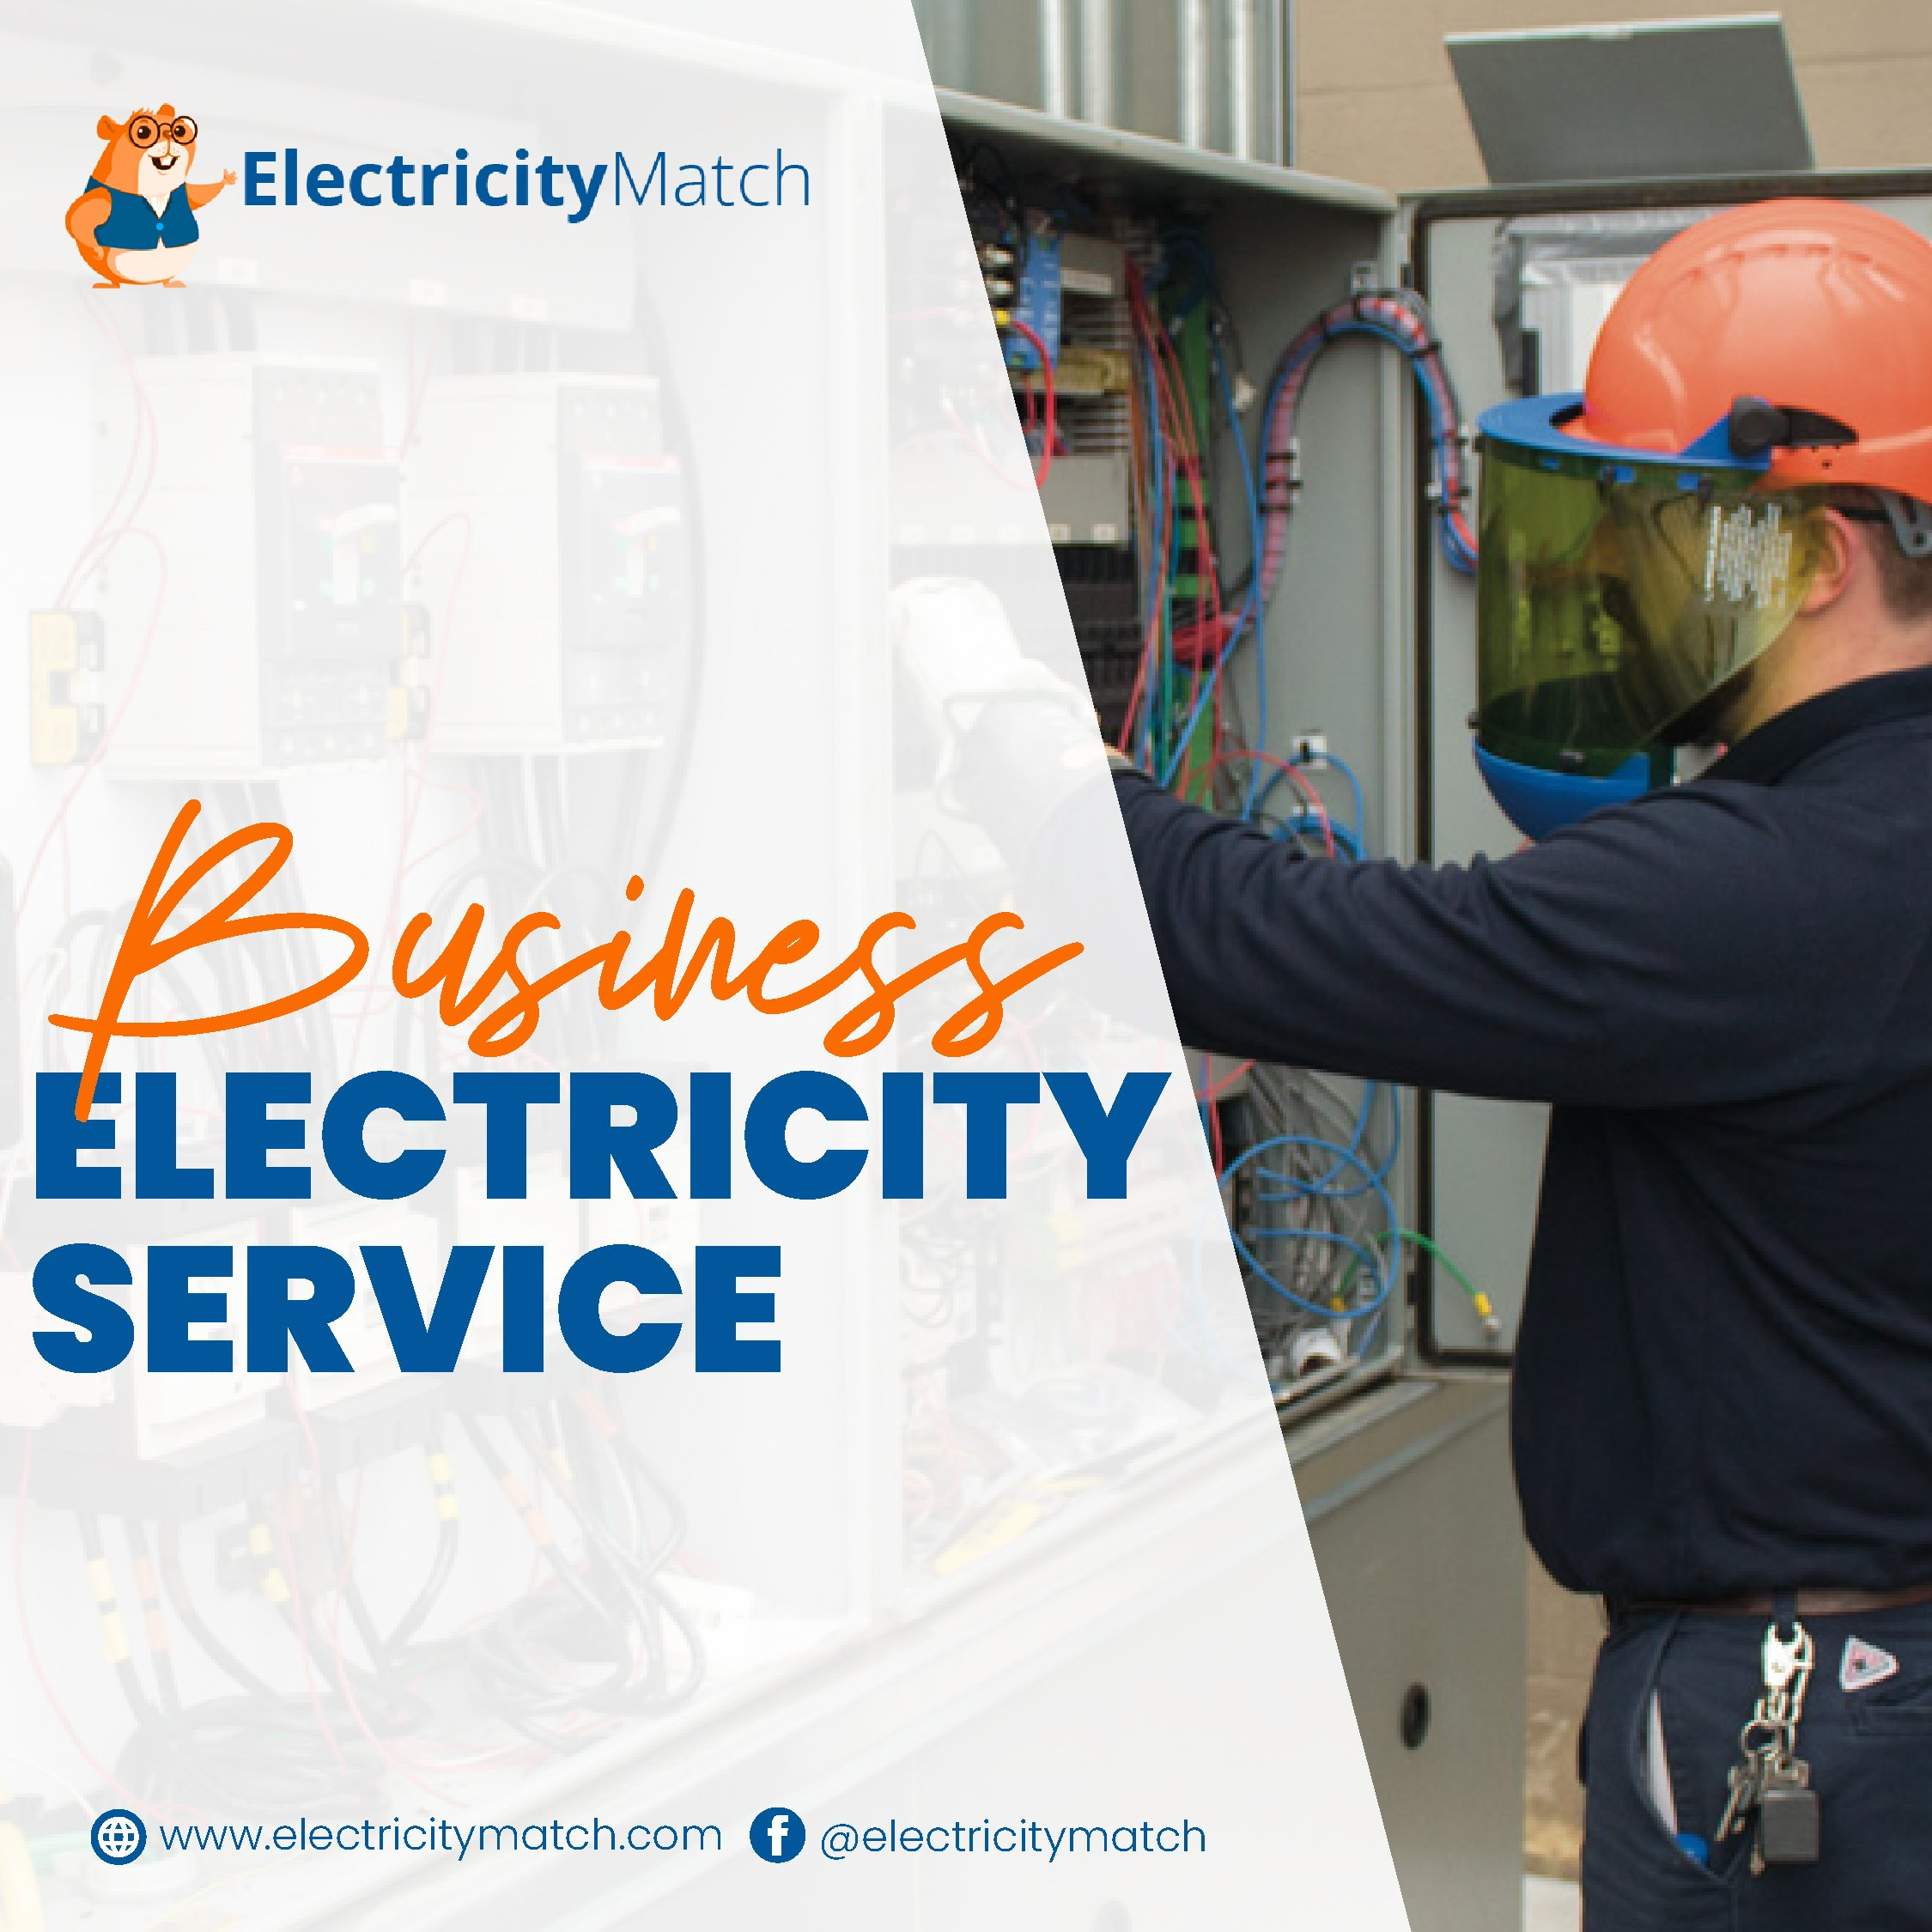 Business Electricity Service – Square